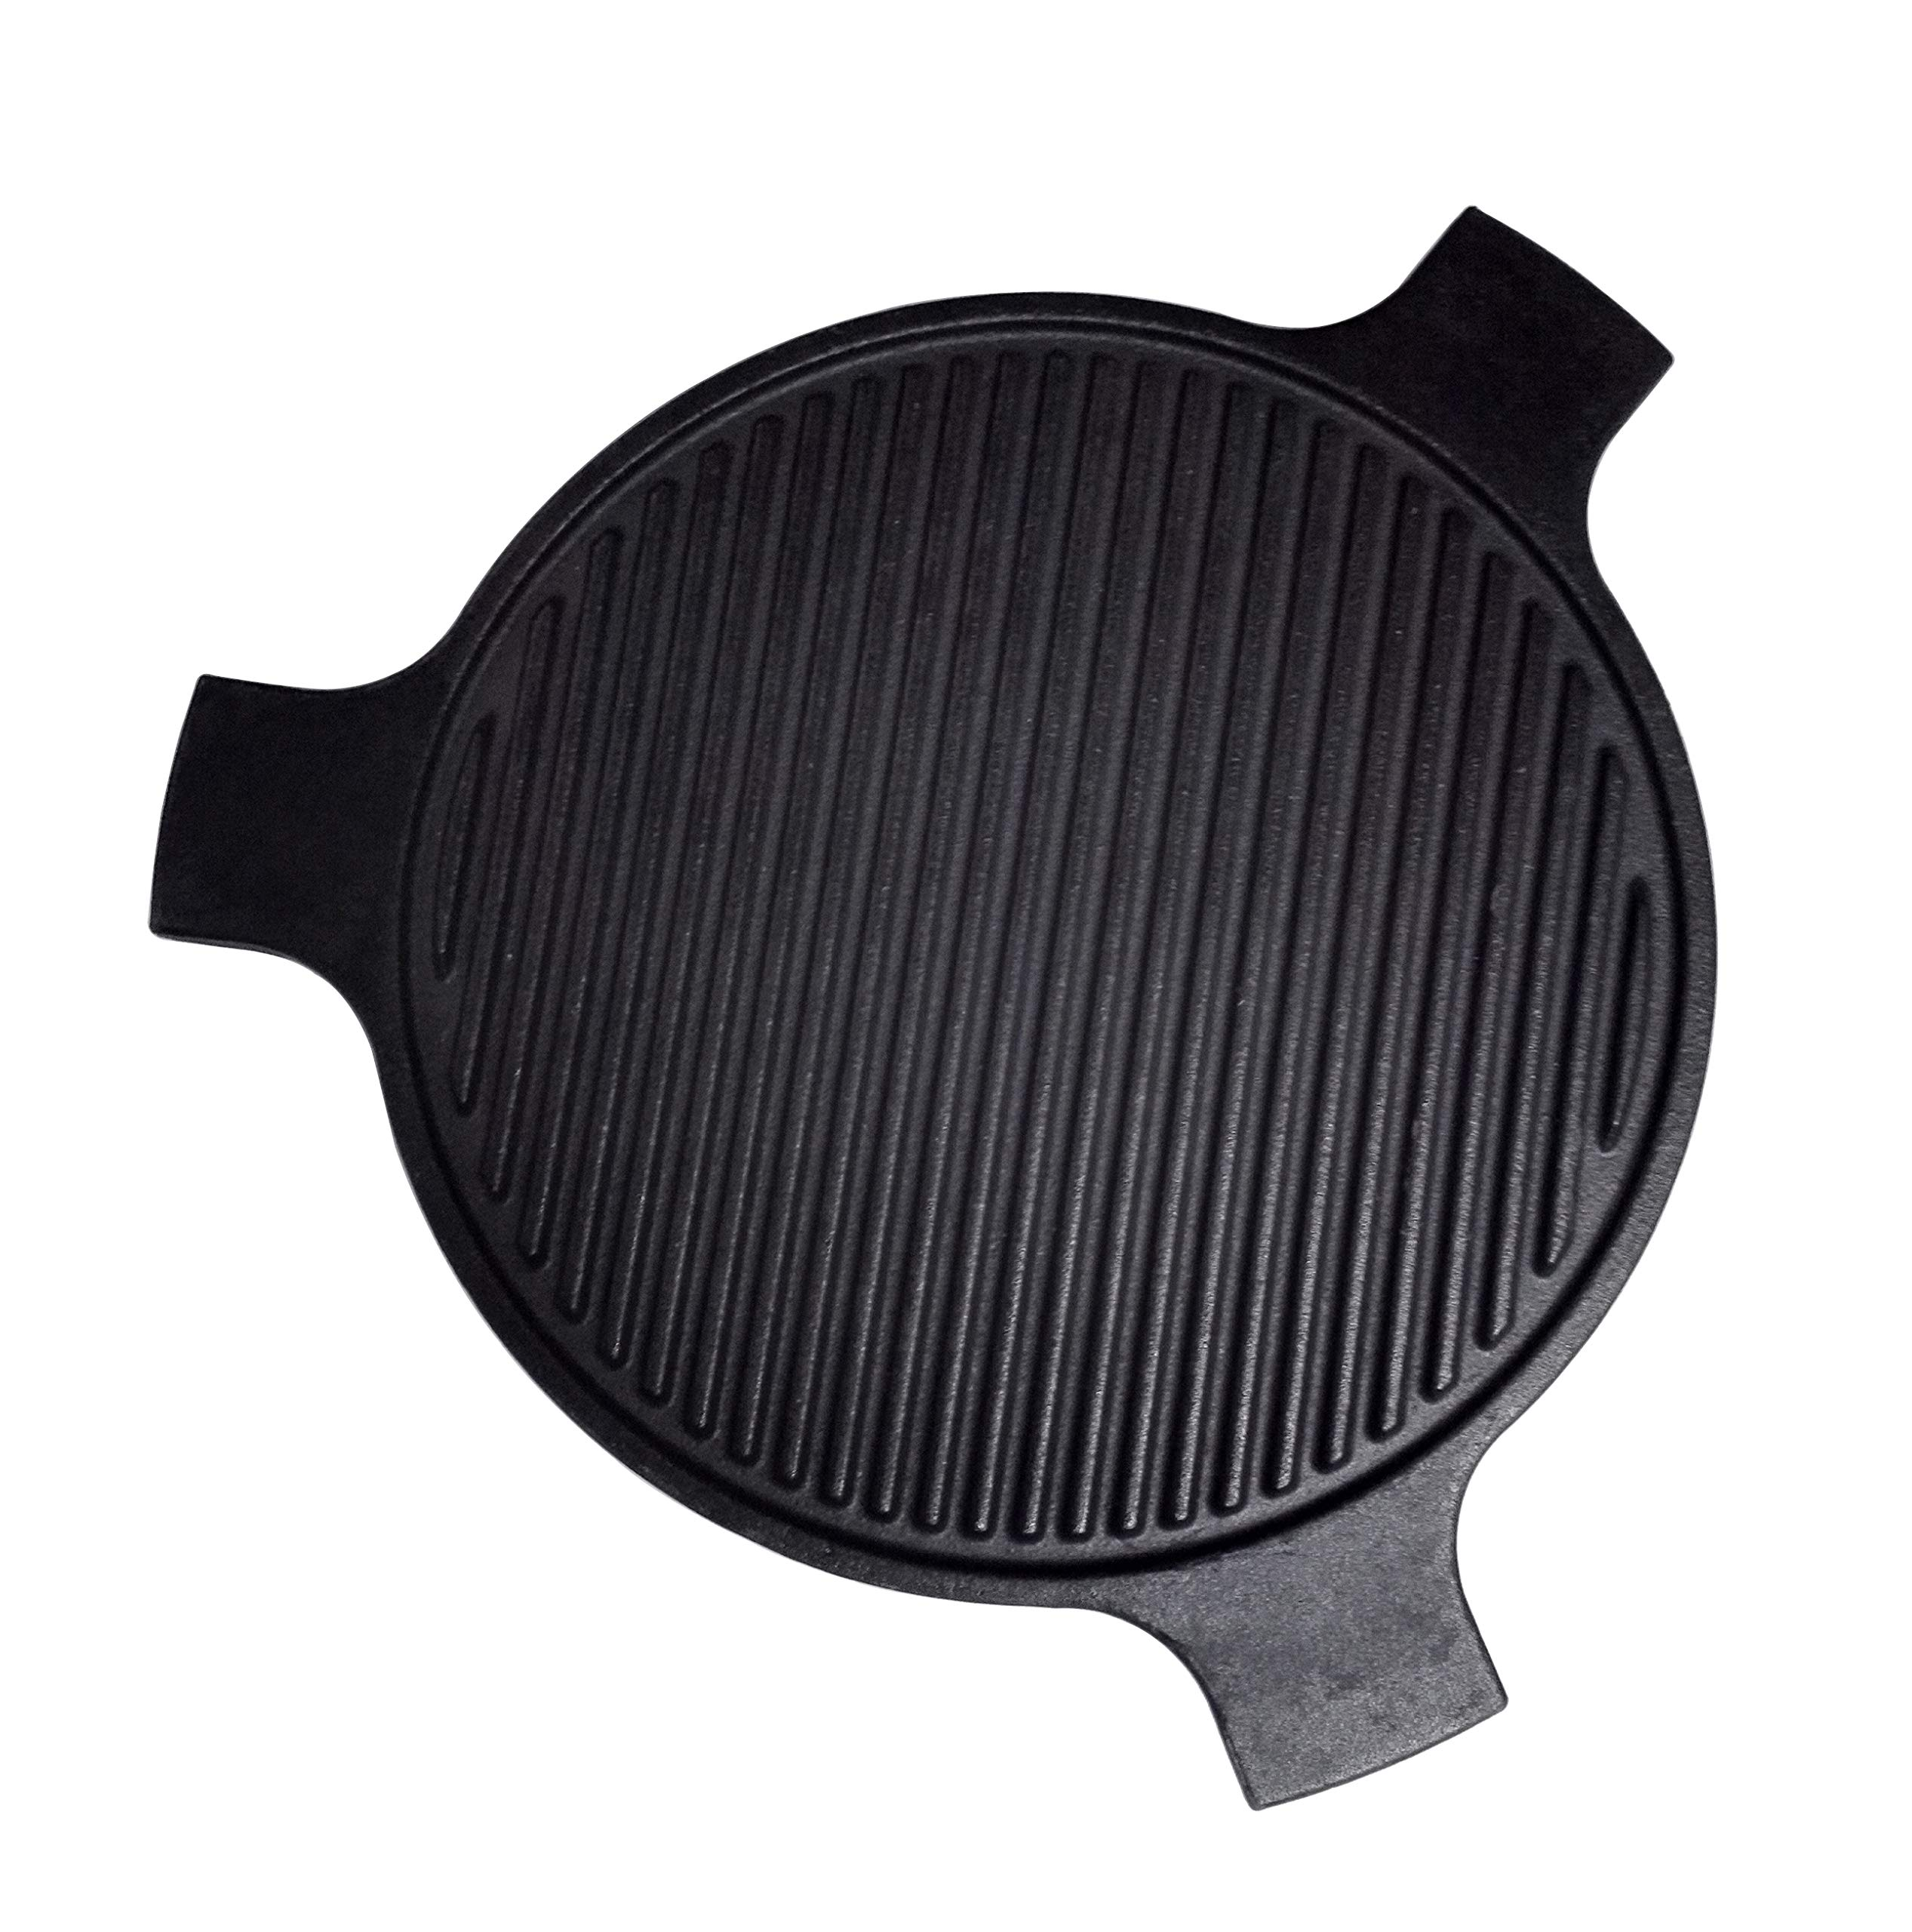 Broilmann Cast Iron Plate Setter - Fits LARGE Big Green Egg by Broilmann